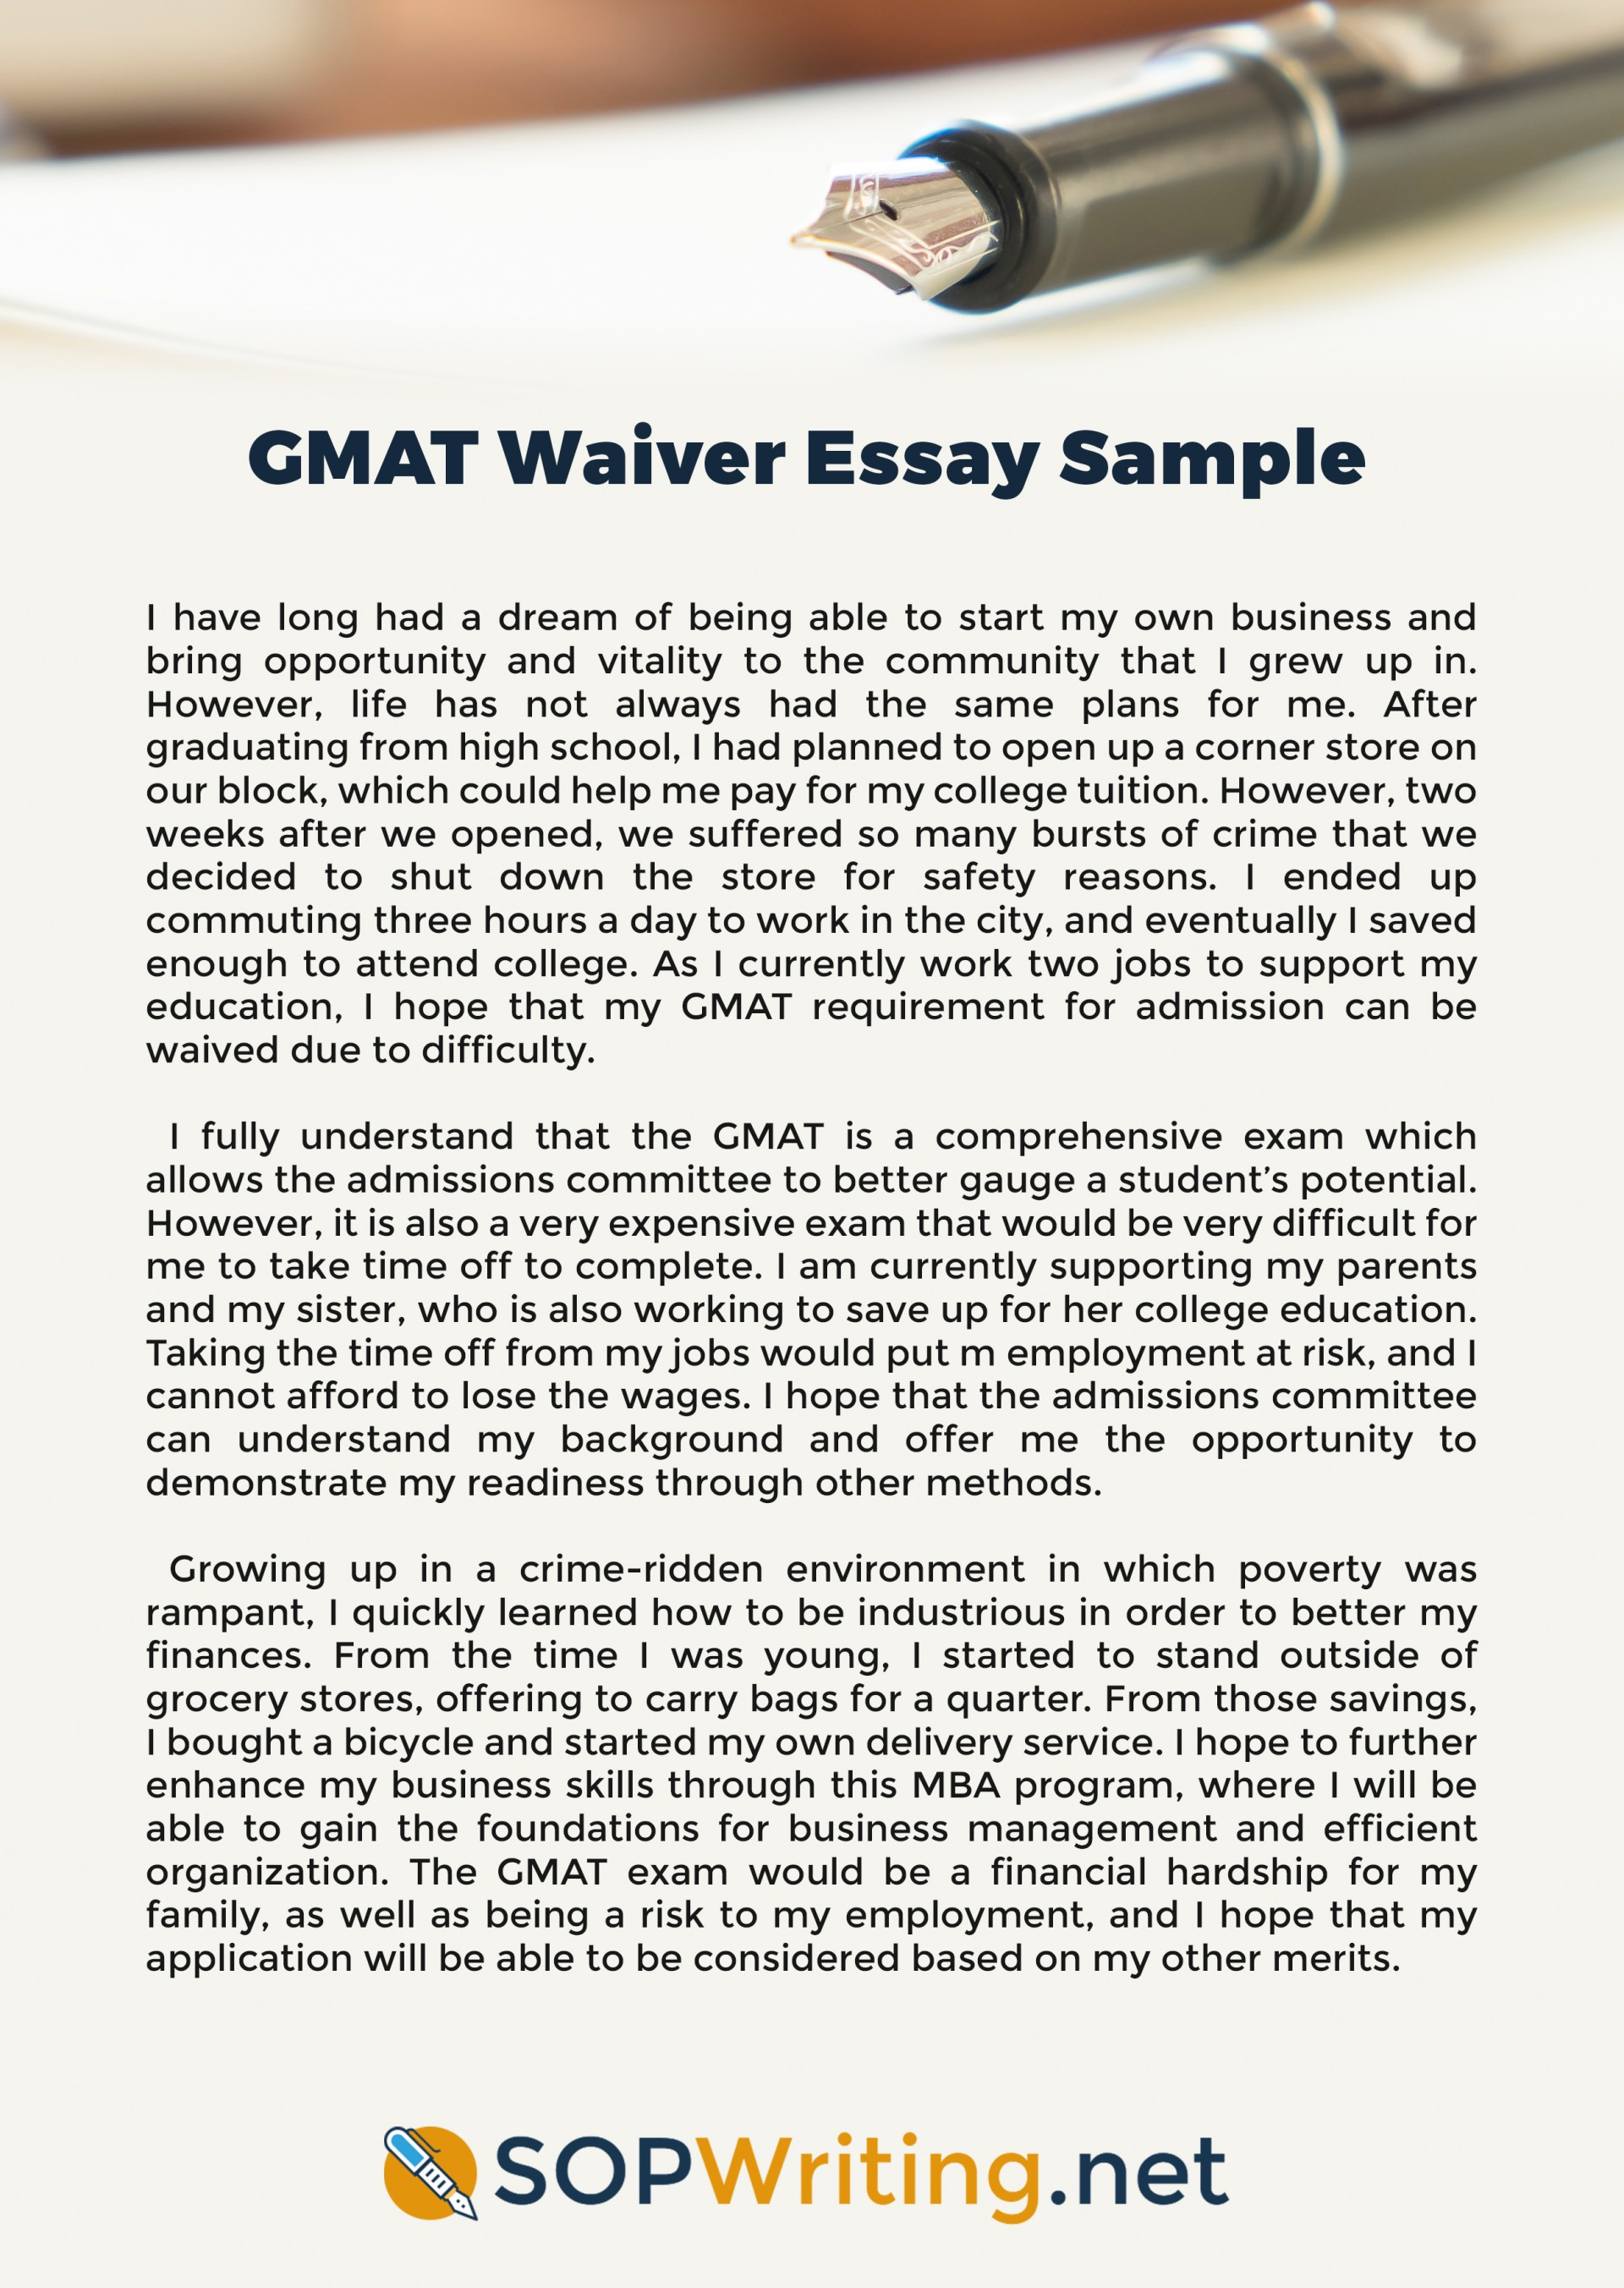 019 Essay Example Gmat Writing Dispatcher Resume Examples Best Format Waiver S Awa Samples Pdf Sample Topics Issue Analysis Of An Questions Application Argument Astounding Score 4.5 1920